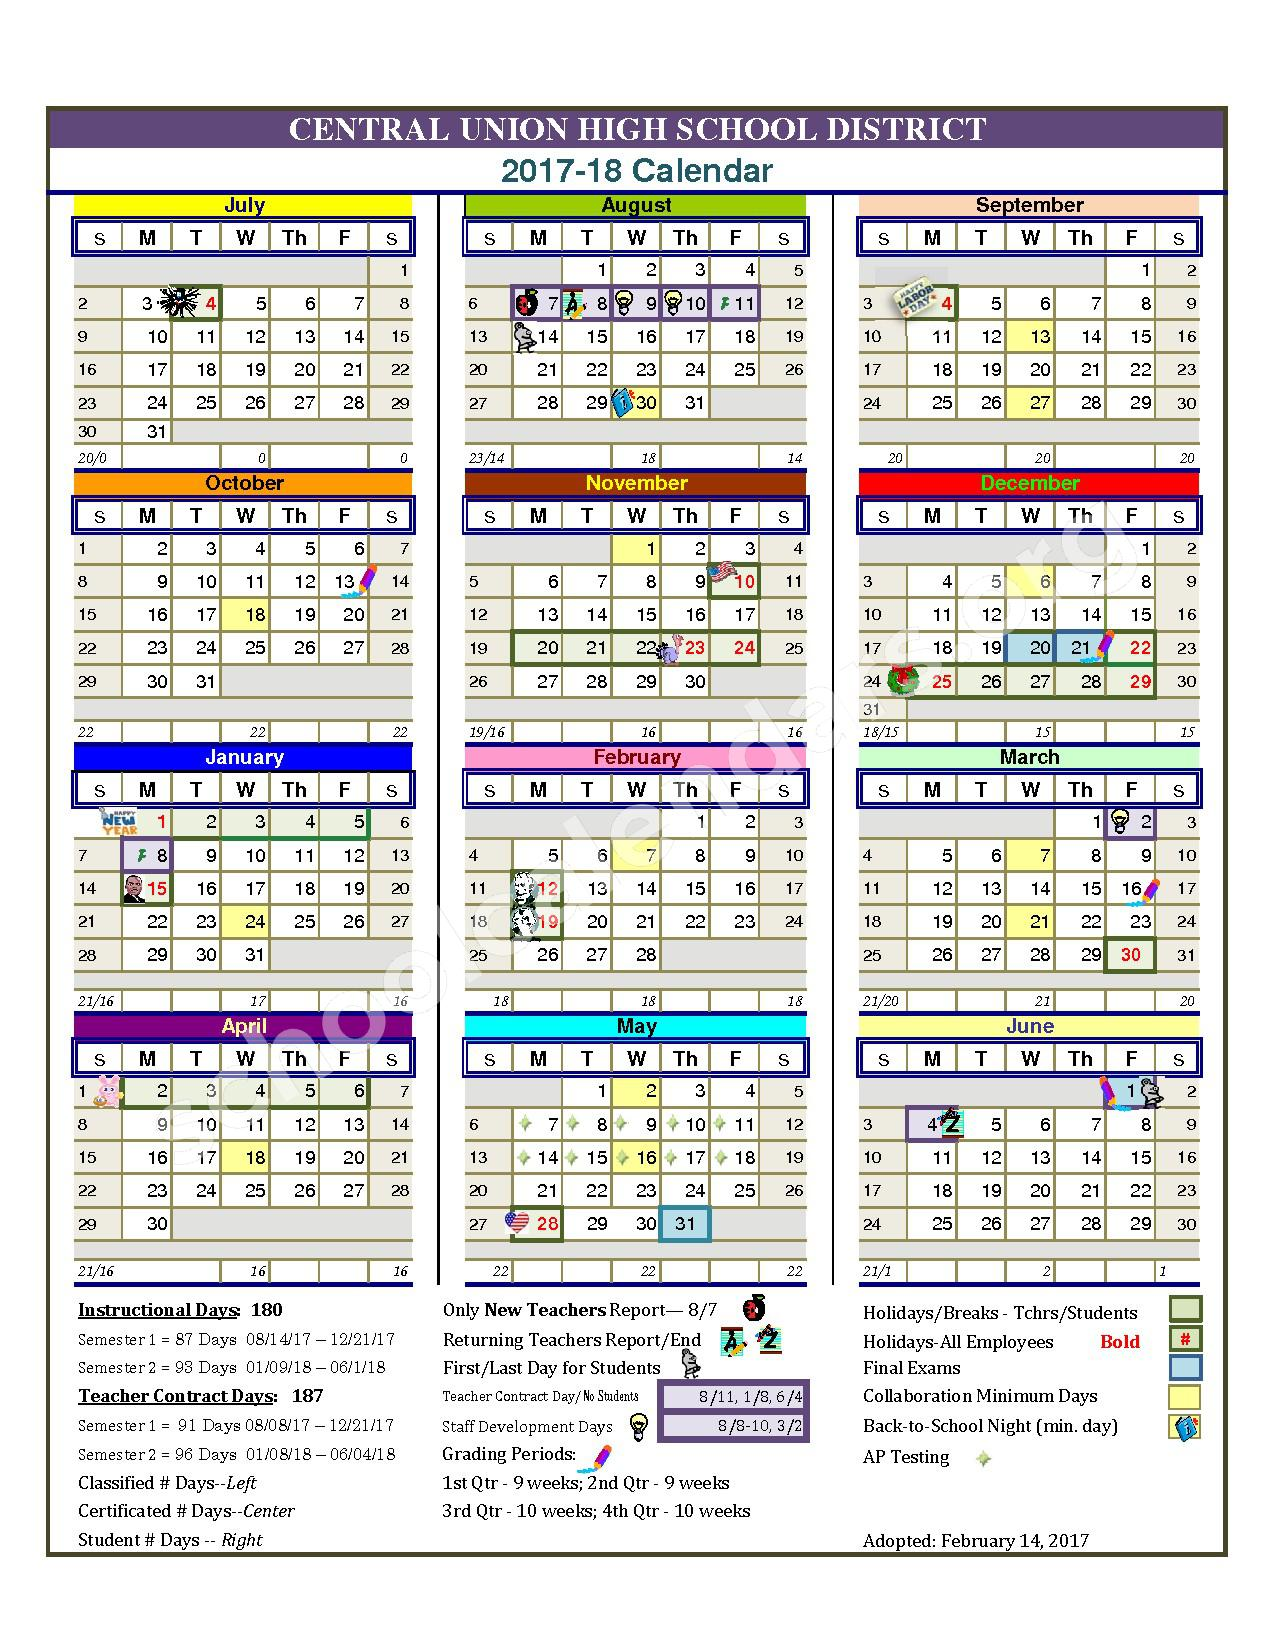 2017 - 2018 School Calendar – Central Union High School District – page 1